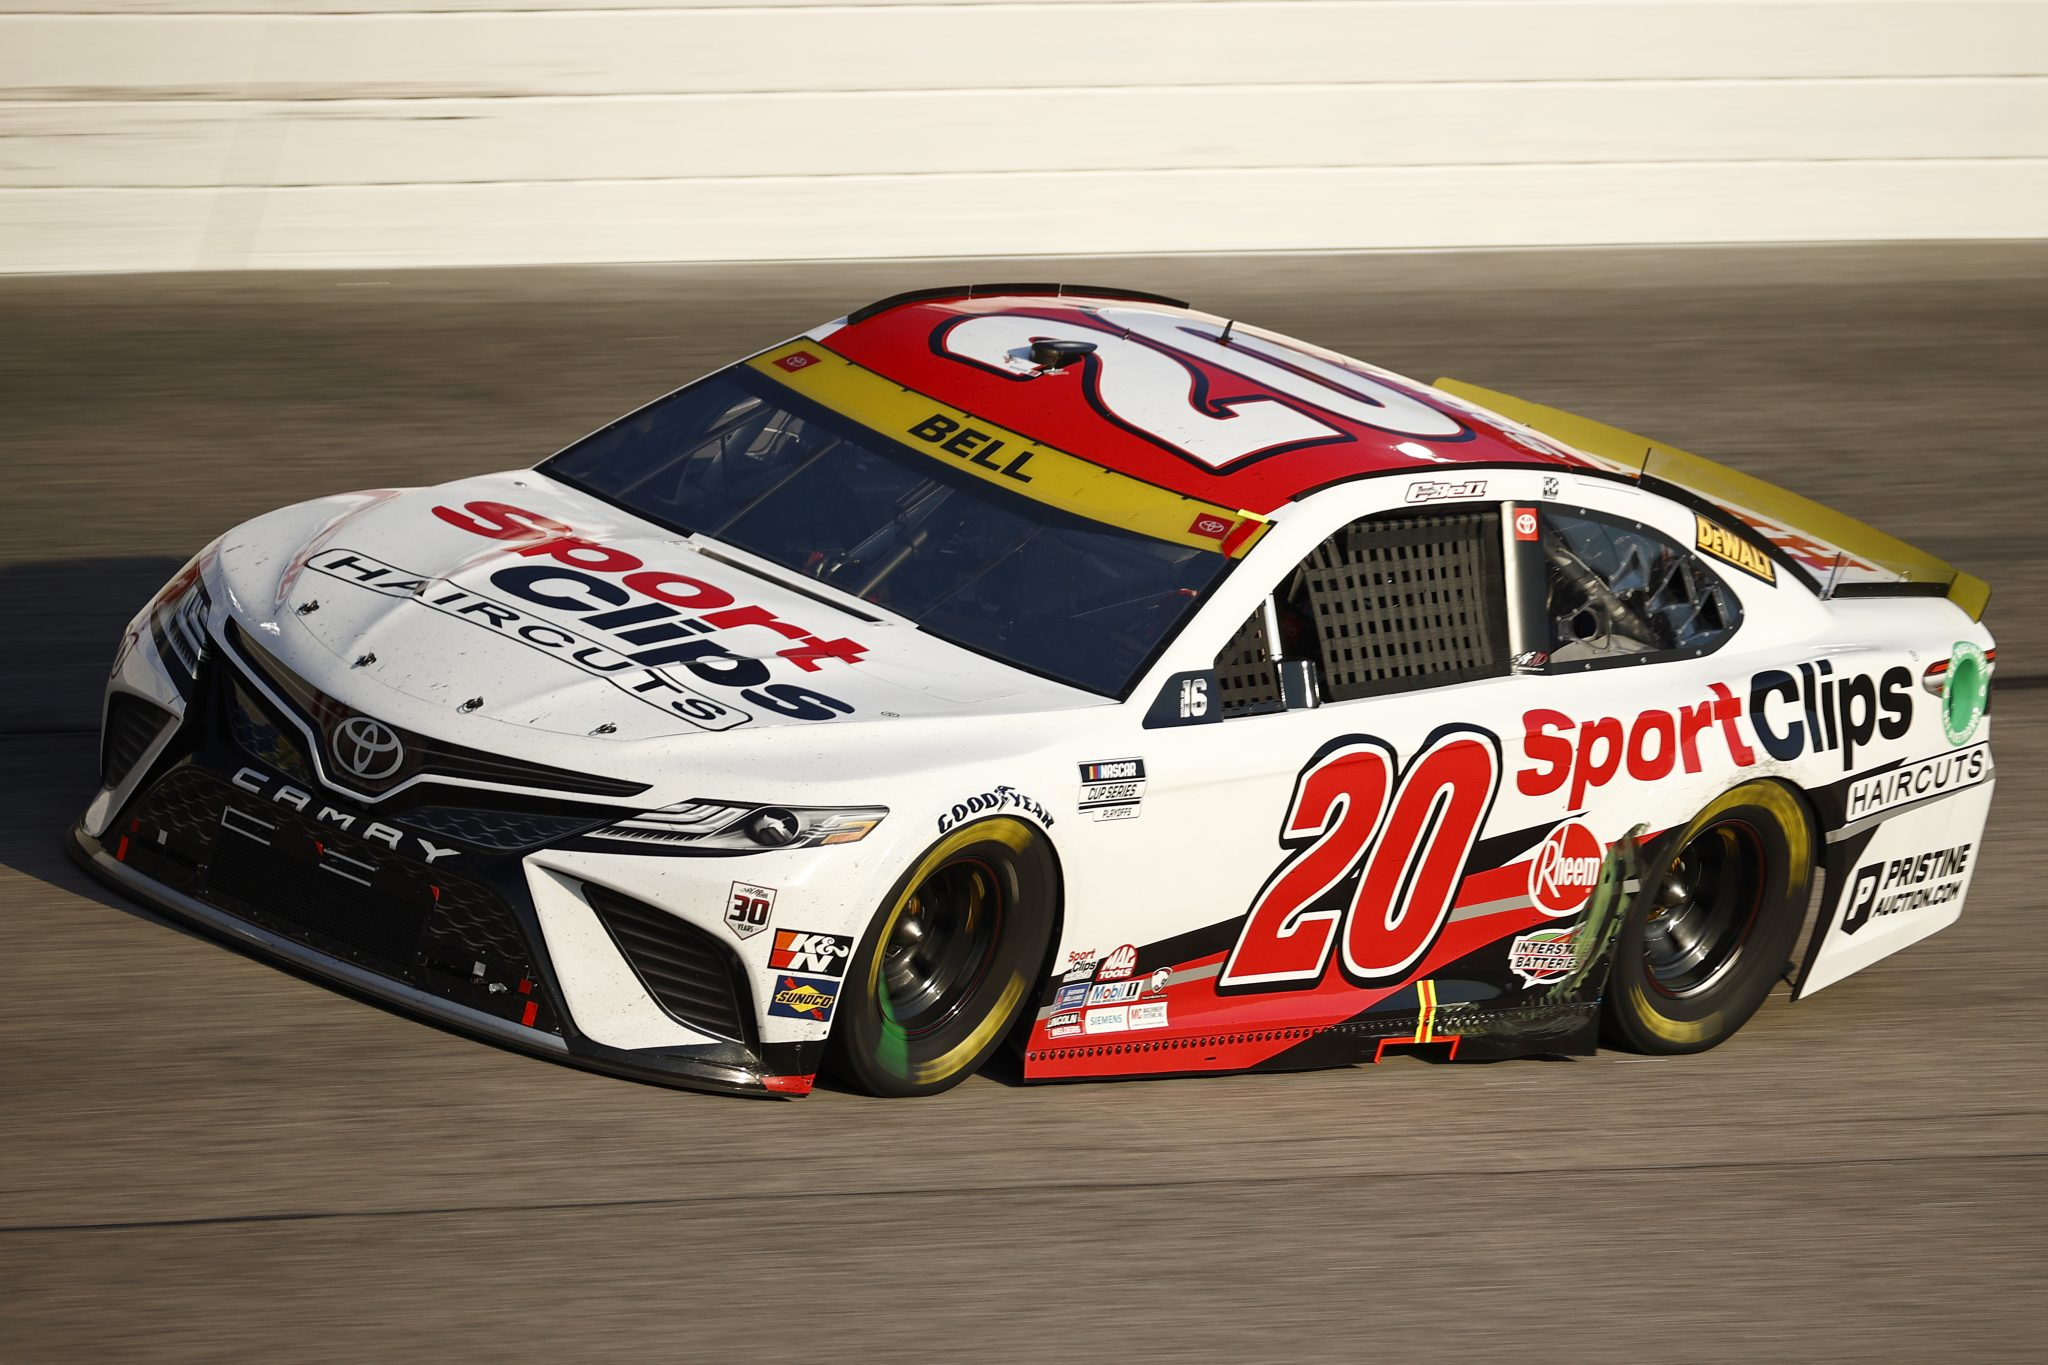 DARLINGTON, SOUTH CAROLINA - SEPTEMBER 05: Christopher Bell, driver of the #20 Sport Clips Haircuts Toyota, drives during the NASCAR Cup Series Cook Out Southern 500 at Darlington Raceway on September 05, 2021 in Darlington, South Carolina. (Photo by Jared C. Tilton/Getty Images) | Getty Images